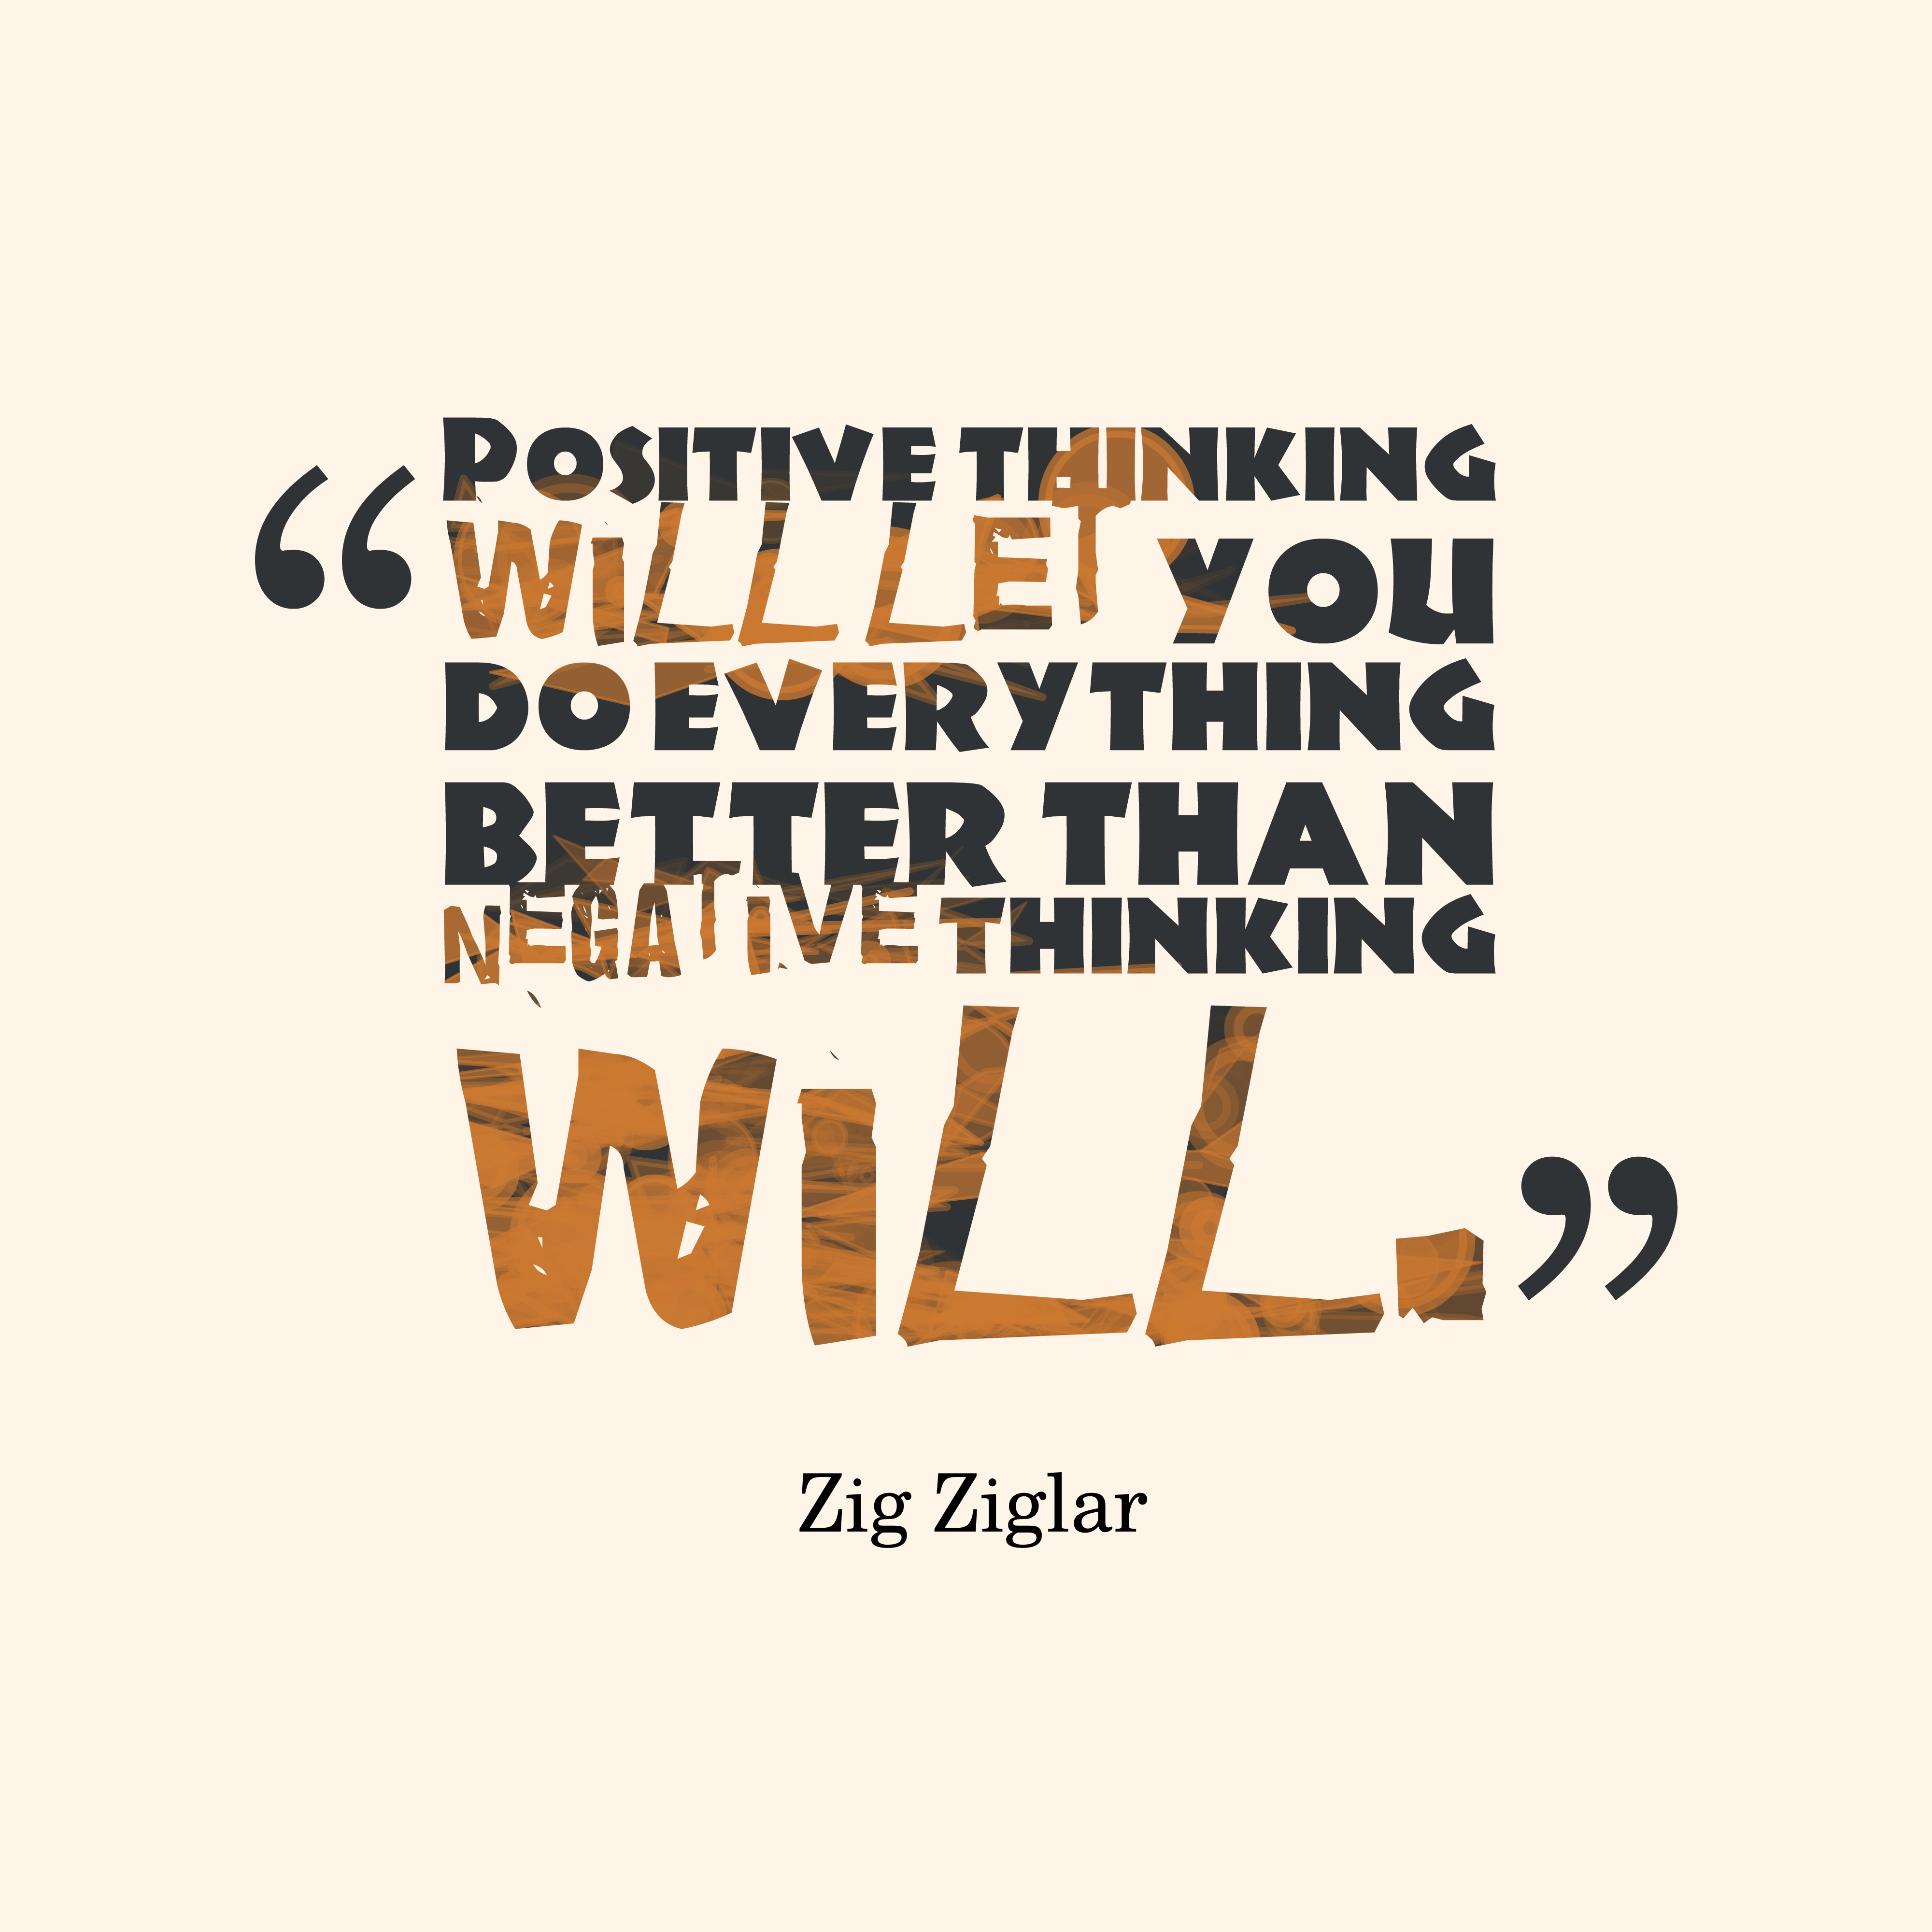 Quotes image of Positive thinking will let you do everything better than negative thinking will.